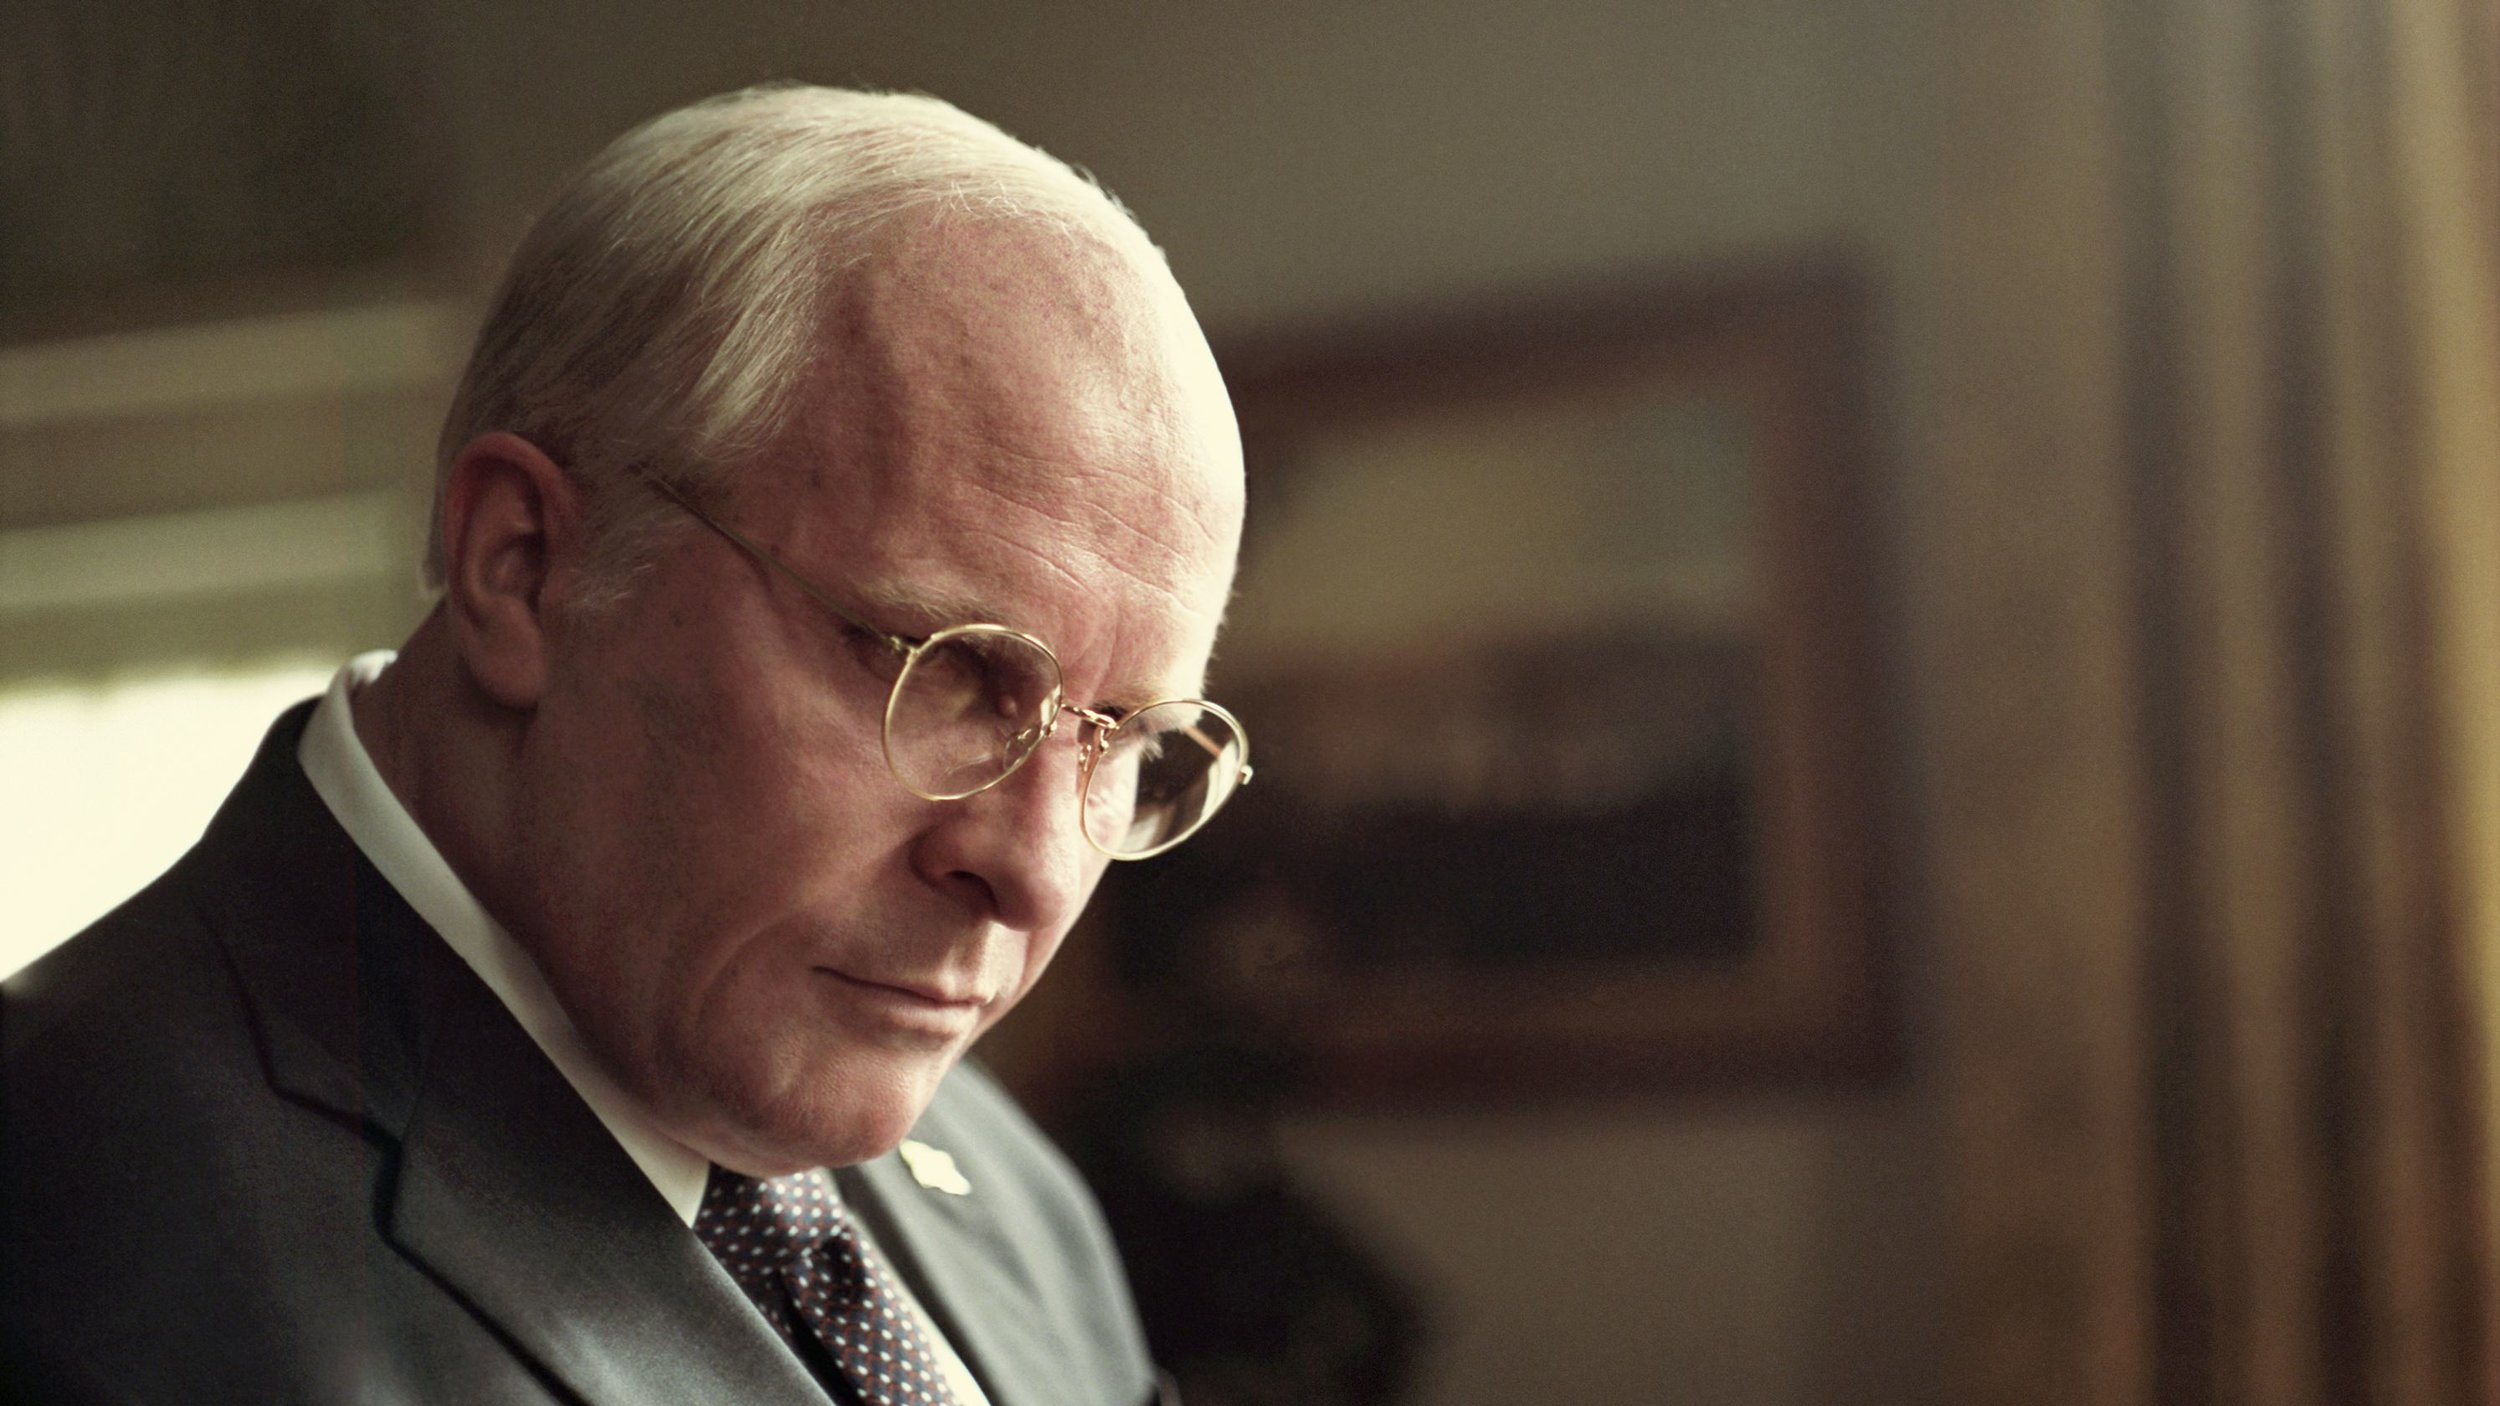 Christian Bale in  Vice  | Annapurna Pictures